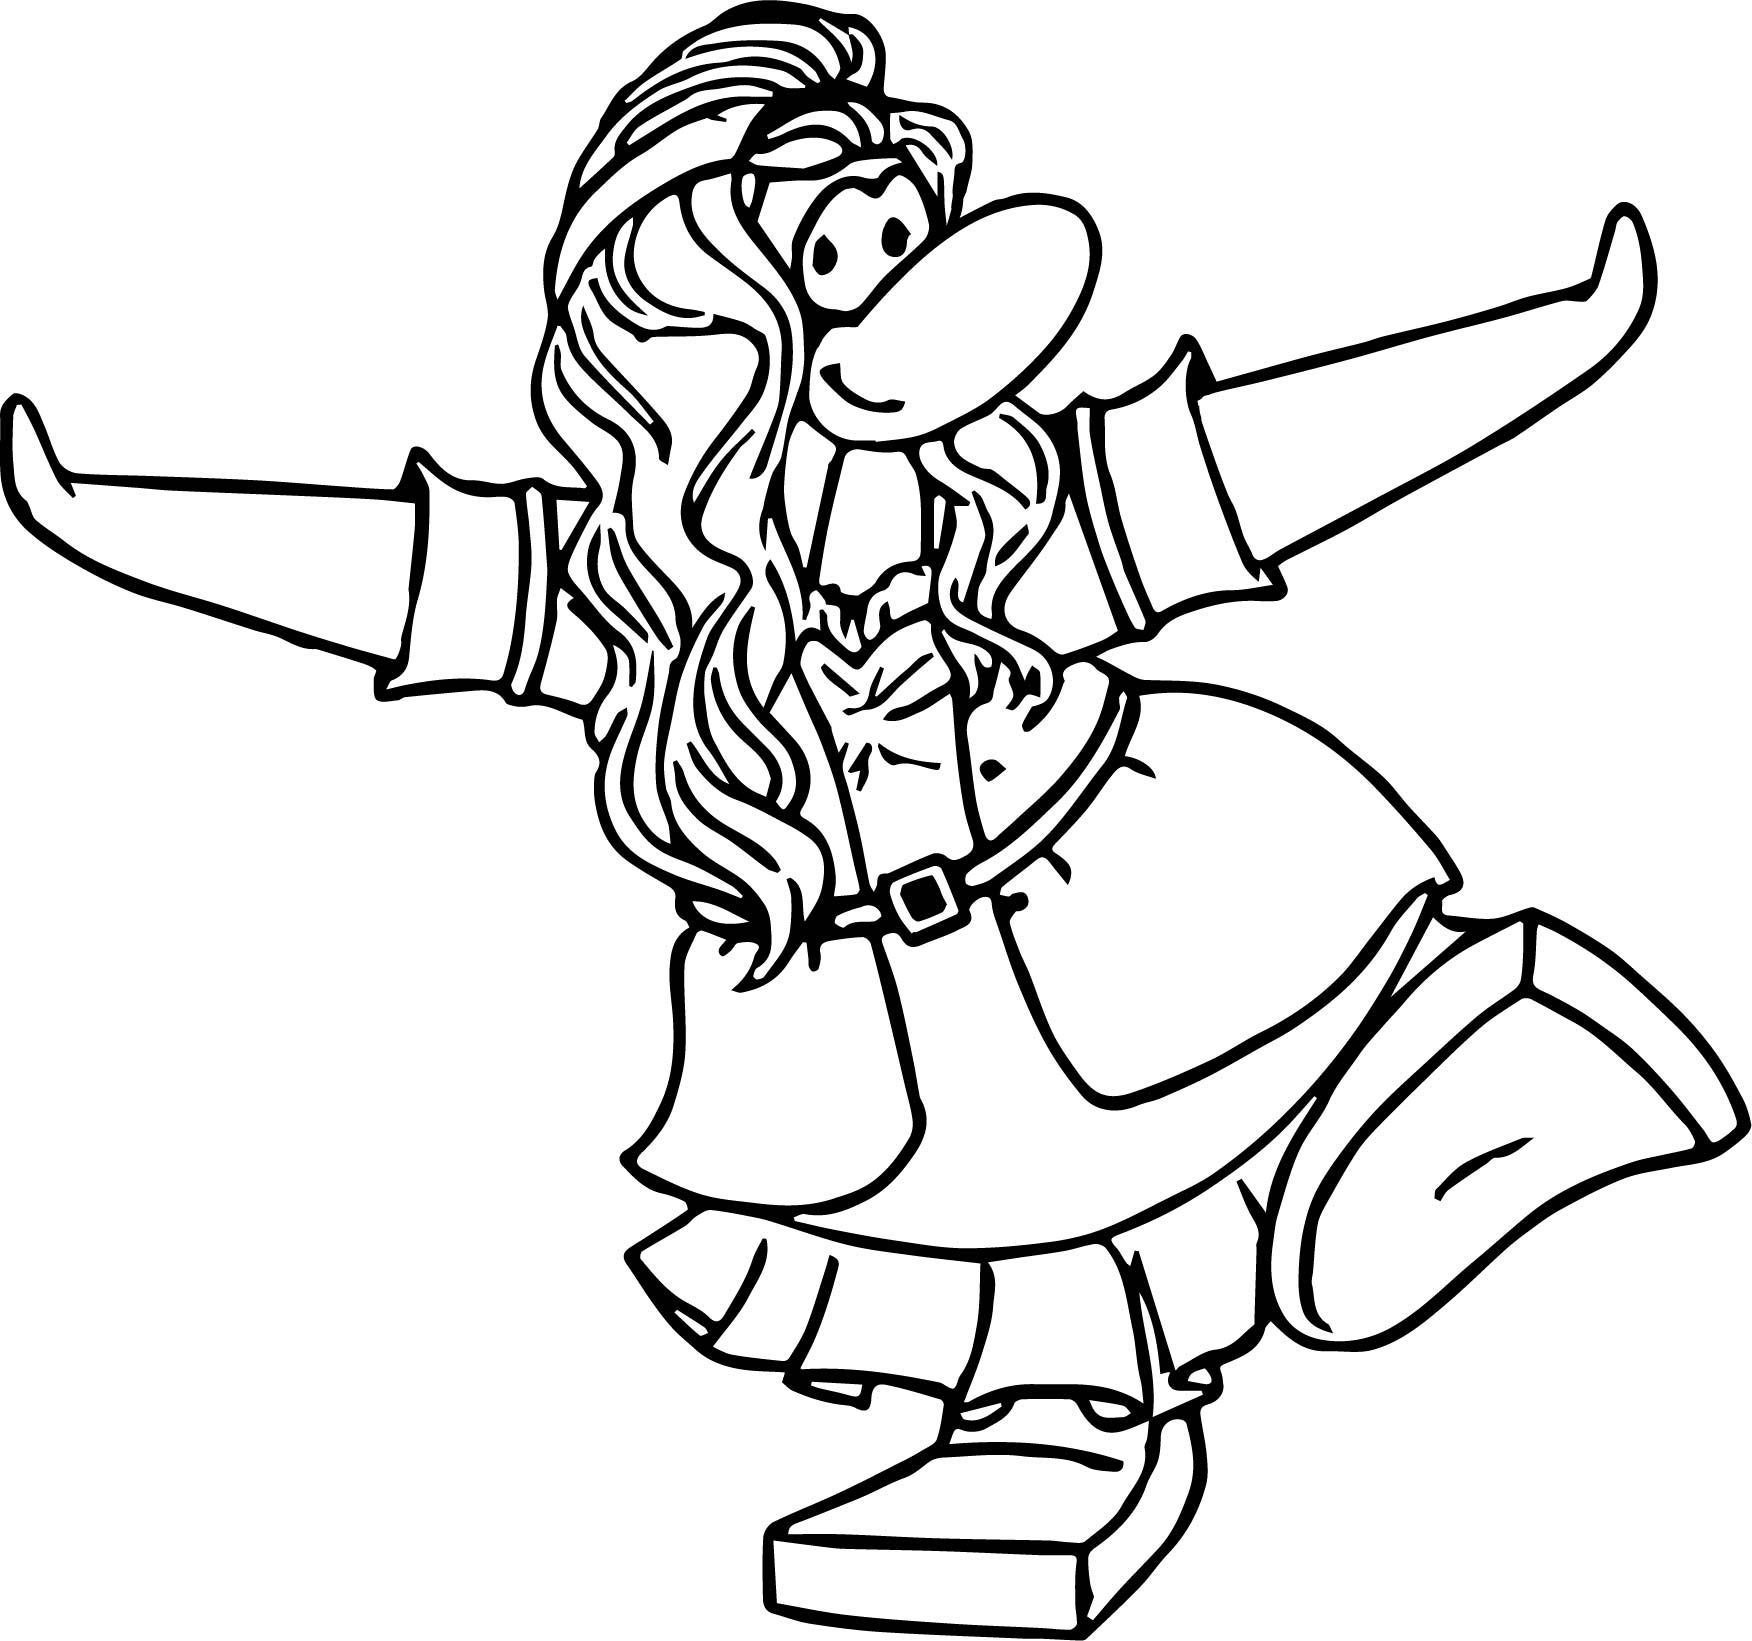 Fine Club Penguin Coloring Pages Cadence Elaboration - Coloring Page ...